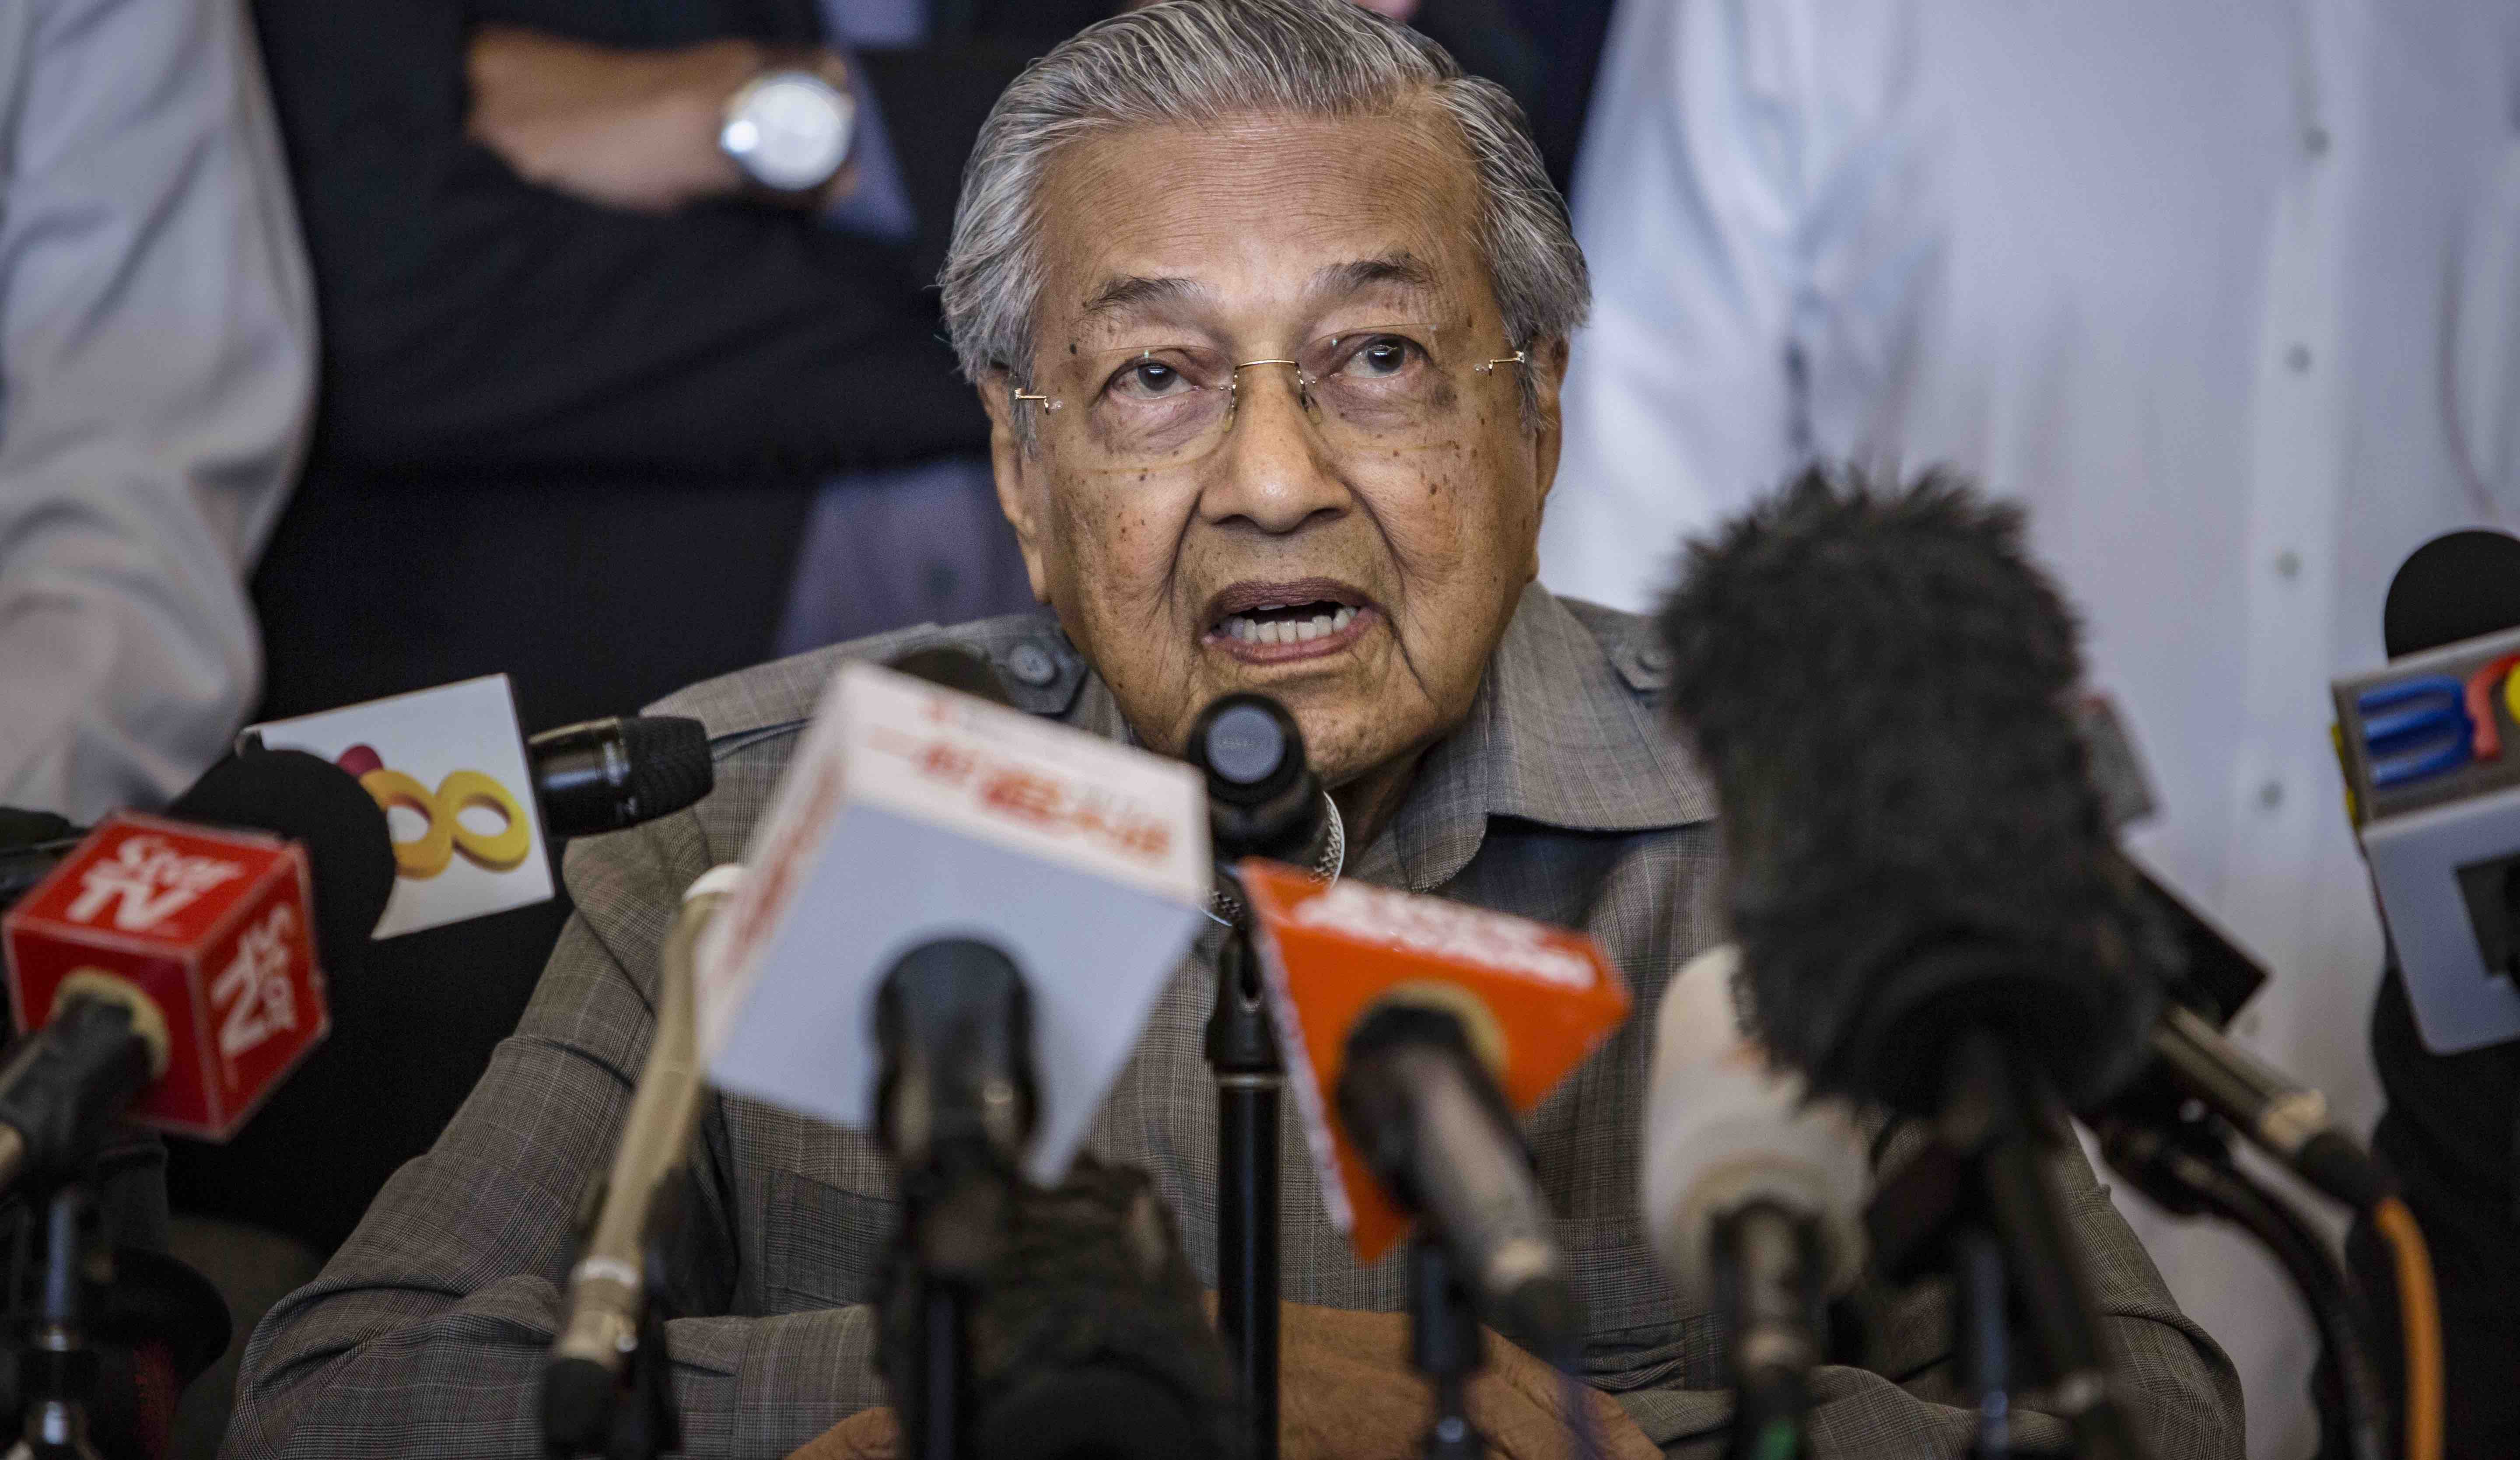 Mahathir Mohamad, chairman of Pakatan Harapan, or the Alliance of Hope (Photo: Ulet Ifansasti/Getty)